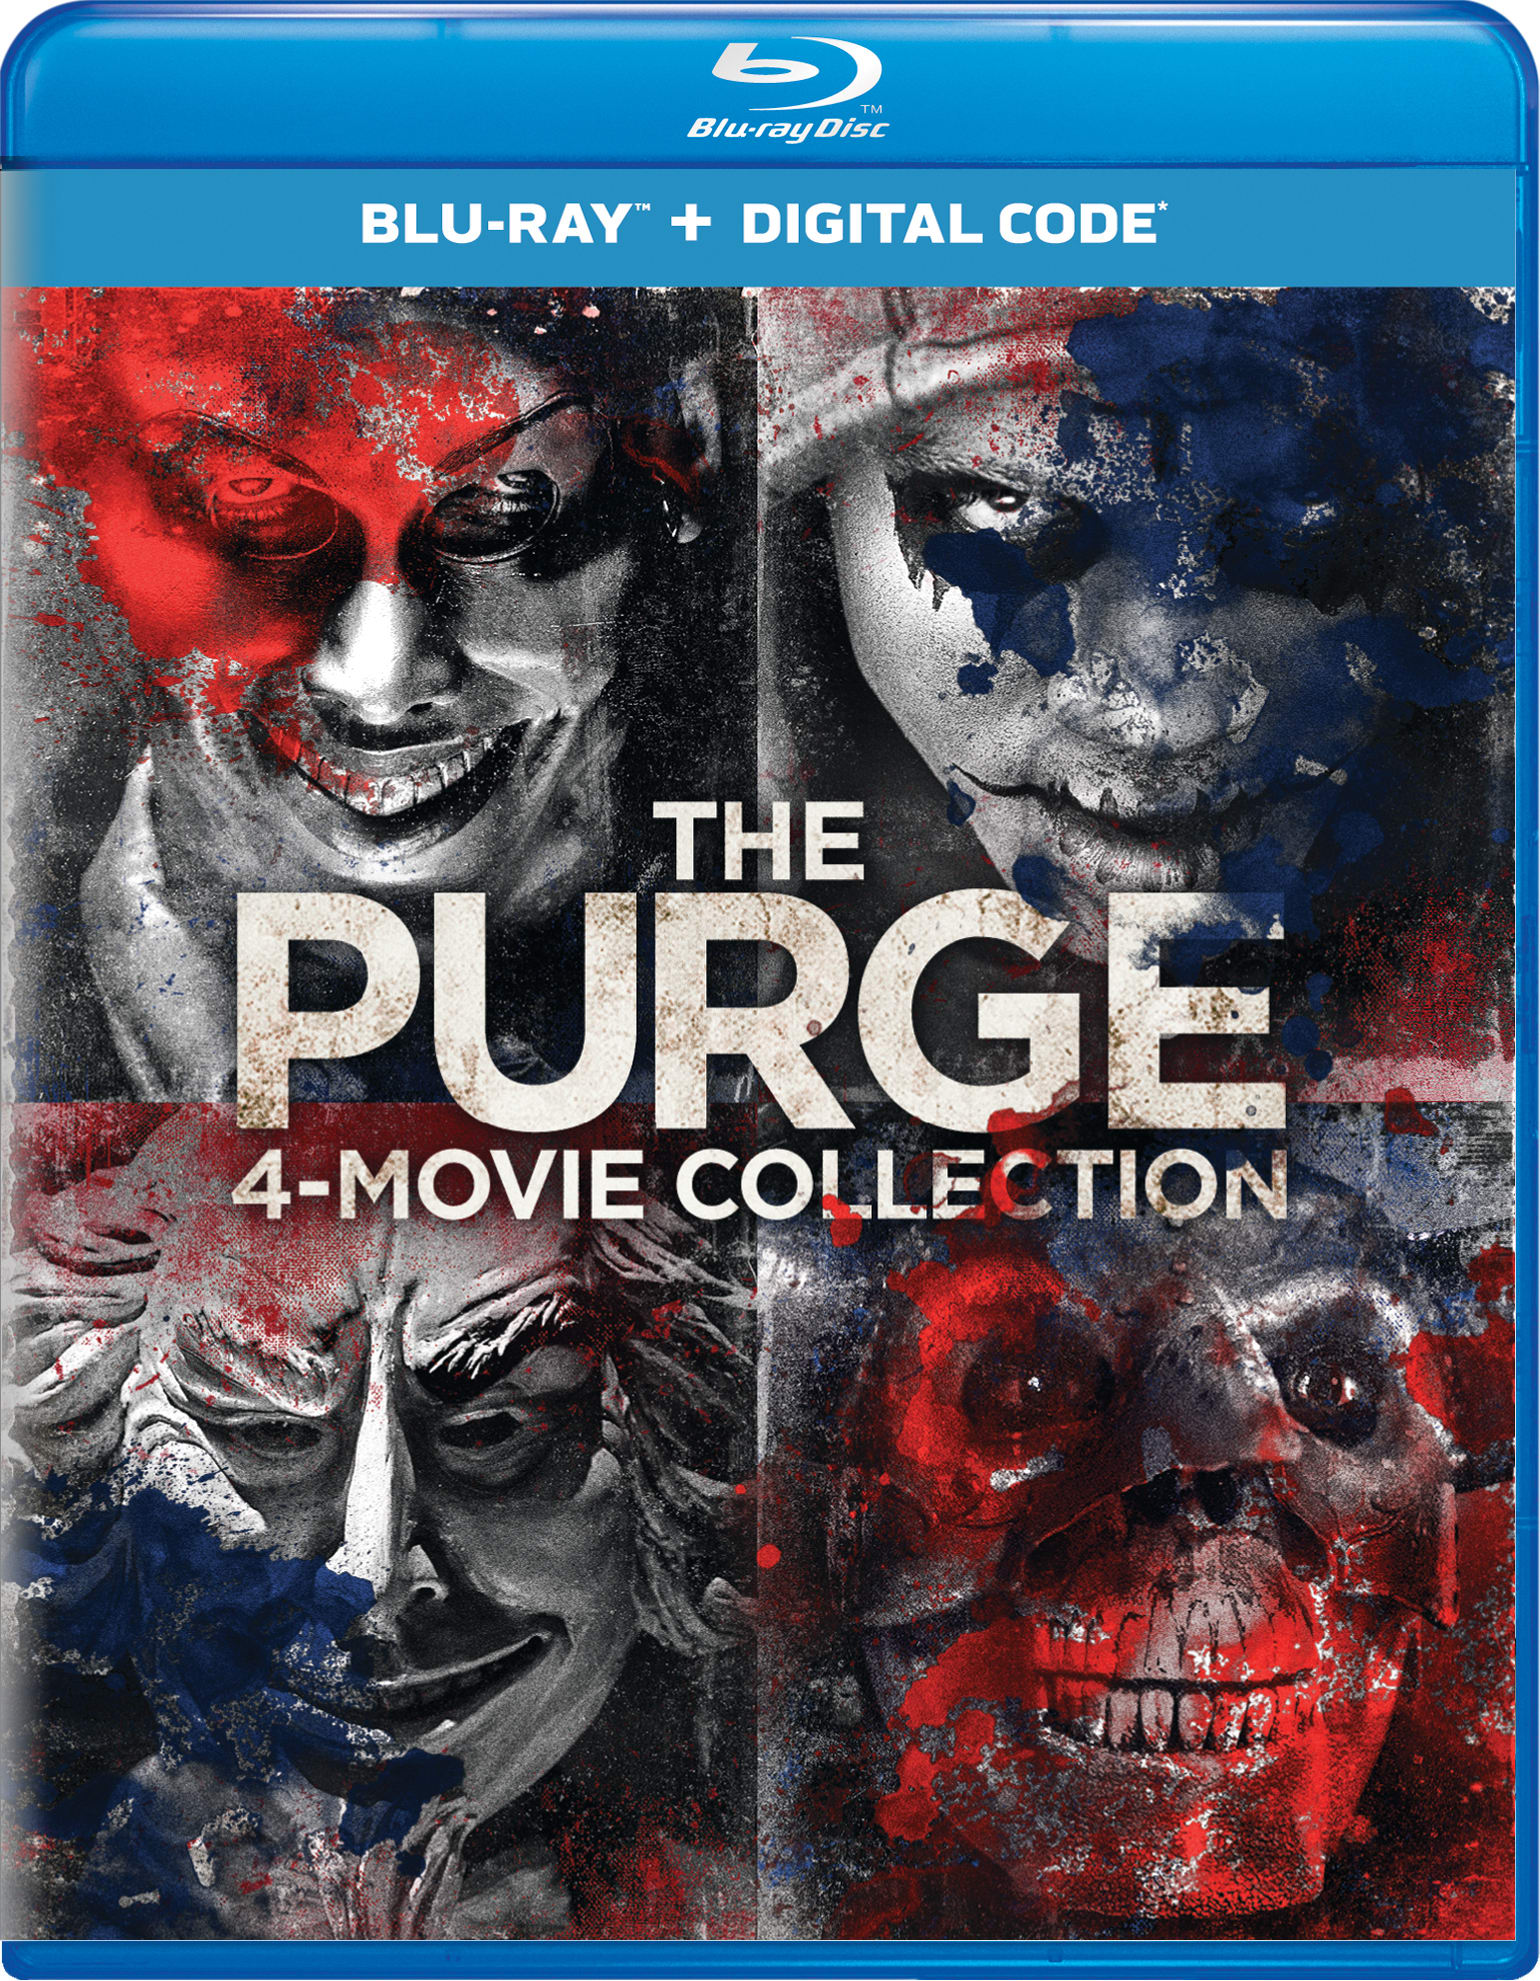 The Purge: 4-movie Collection [Blu-ray]